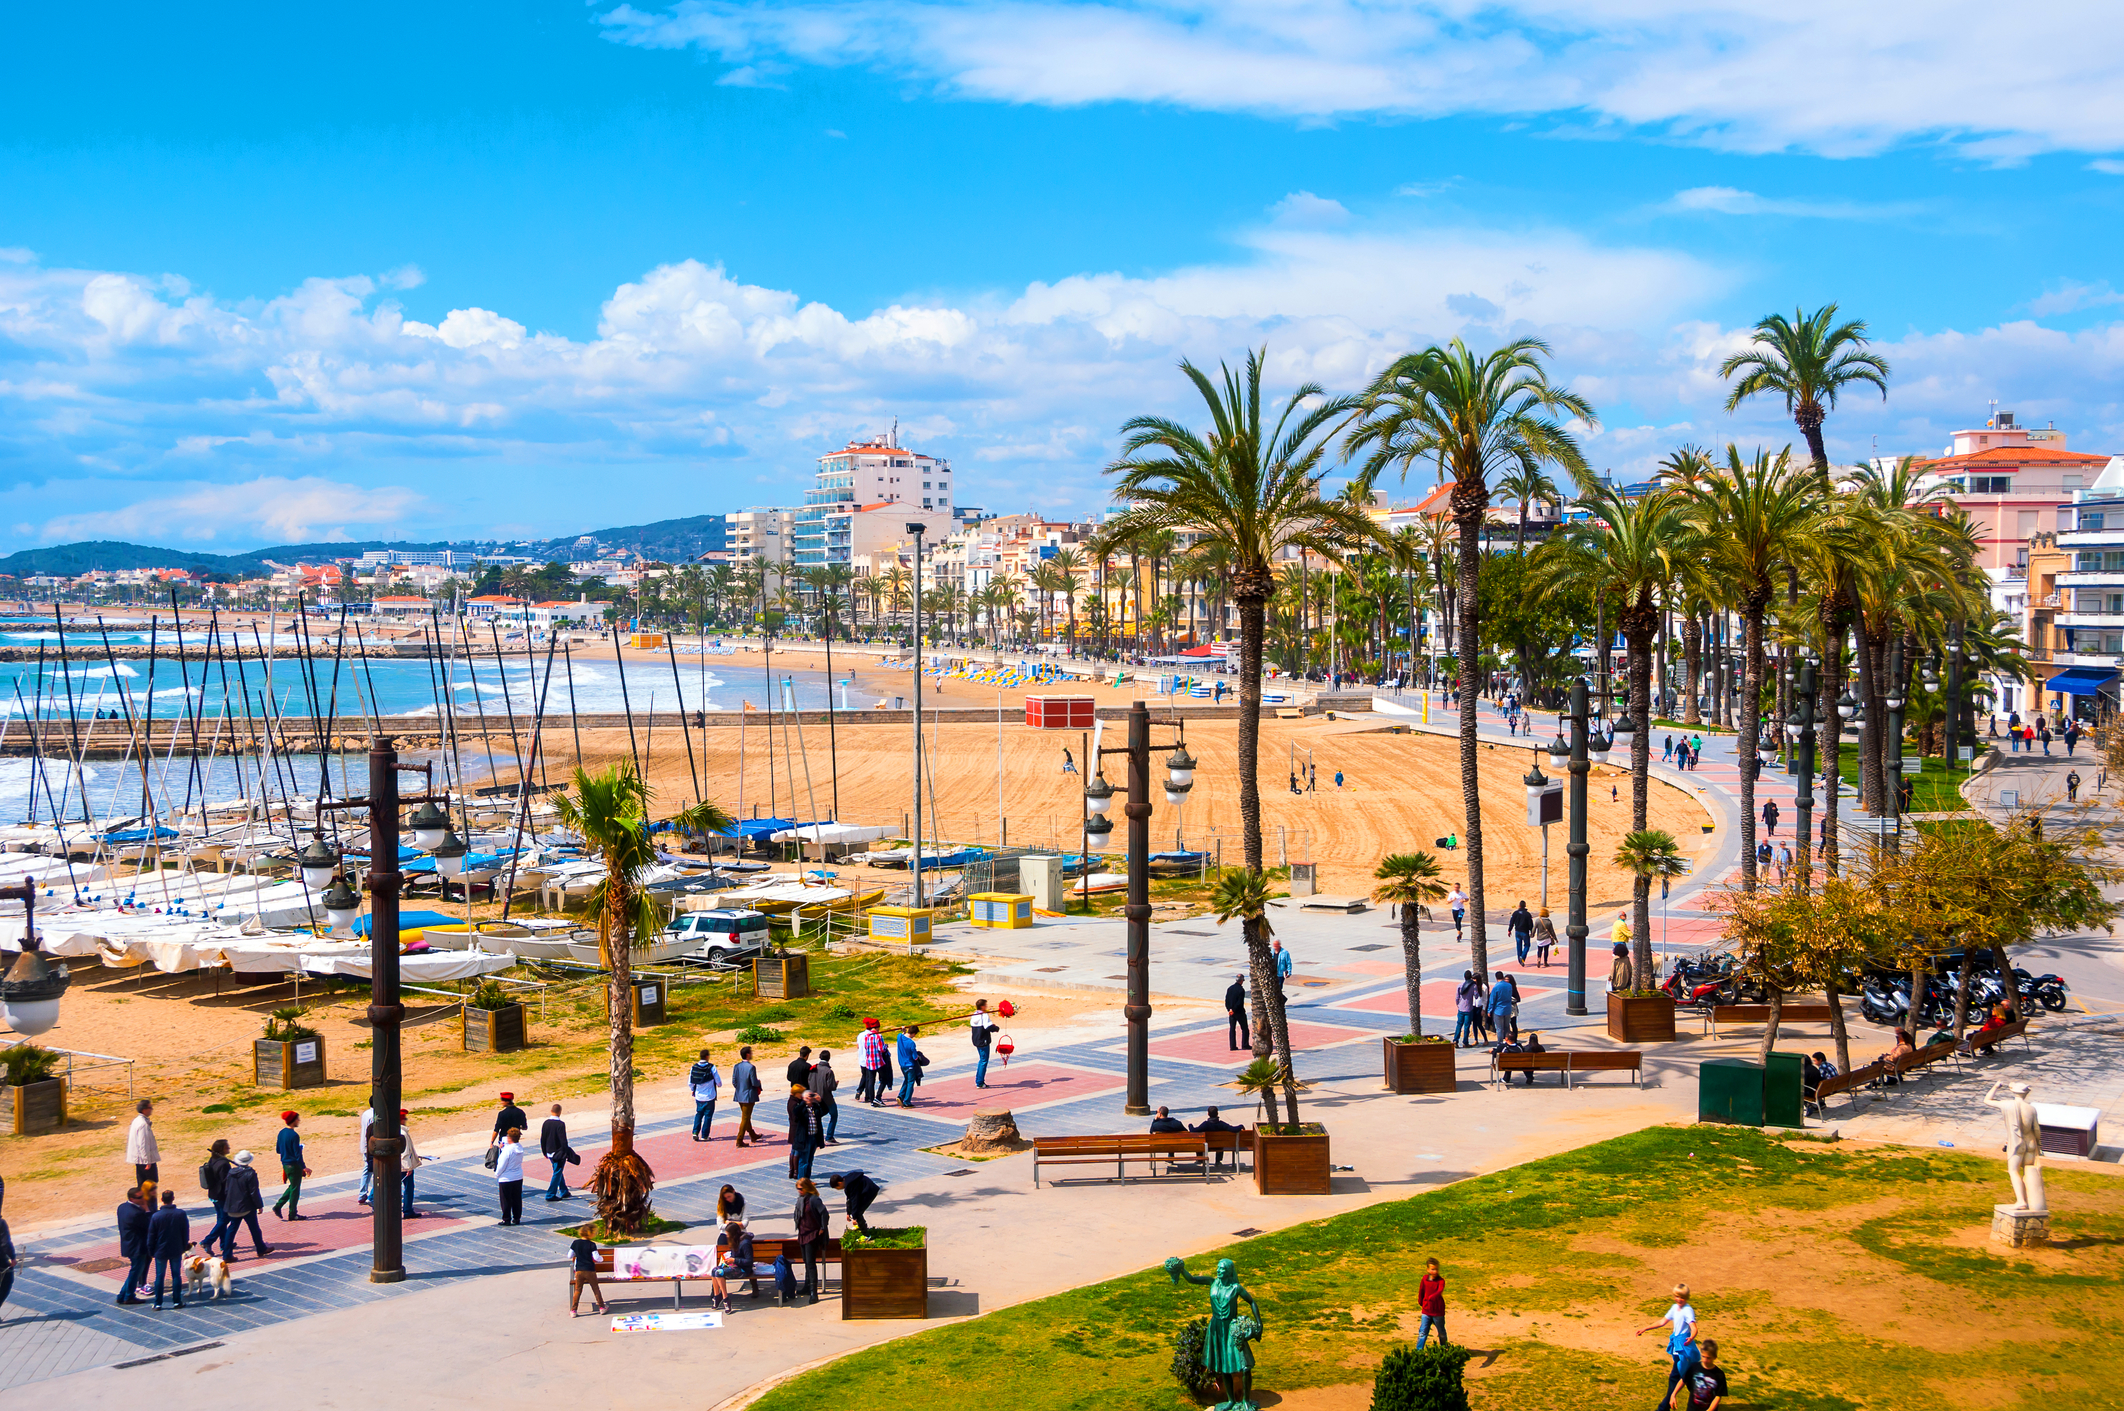 Sitges, Spain beach and promenade area of the popular touristic town in Costa Dorada